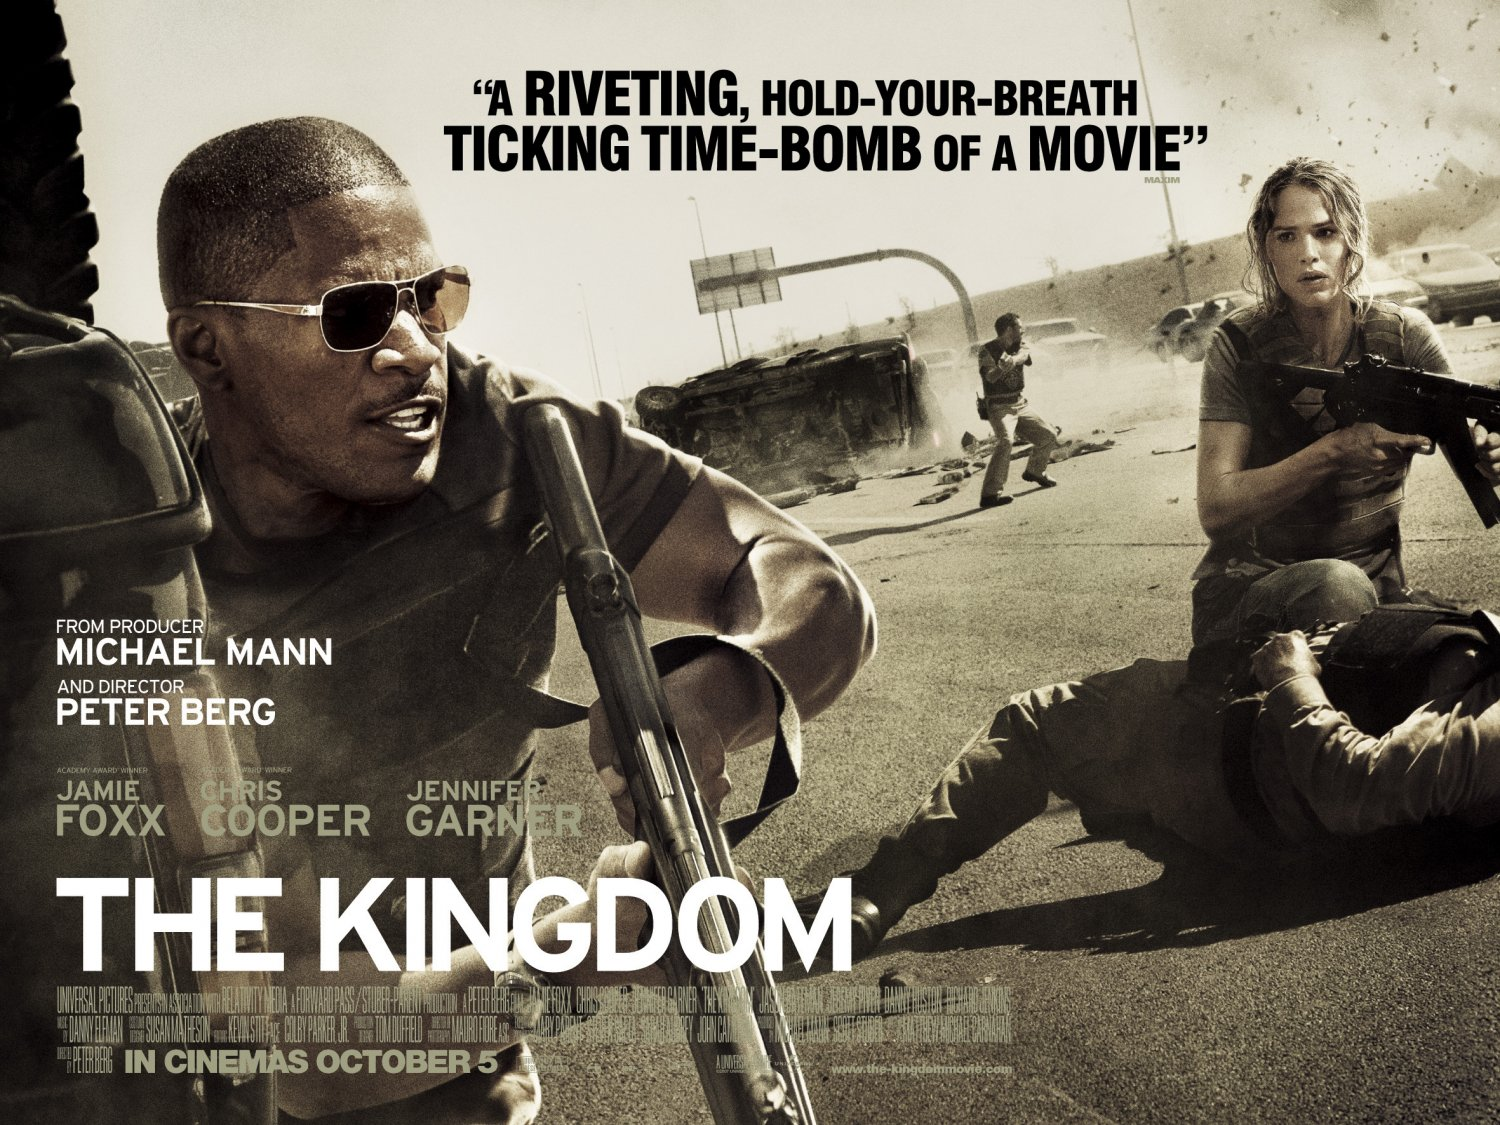 The Kingdom movie poster.jpg